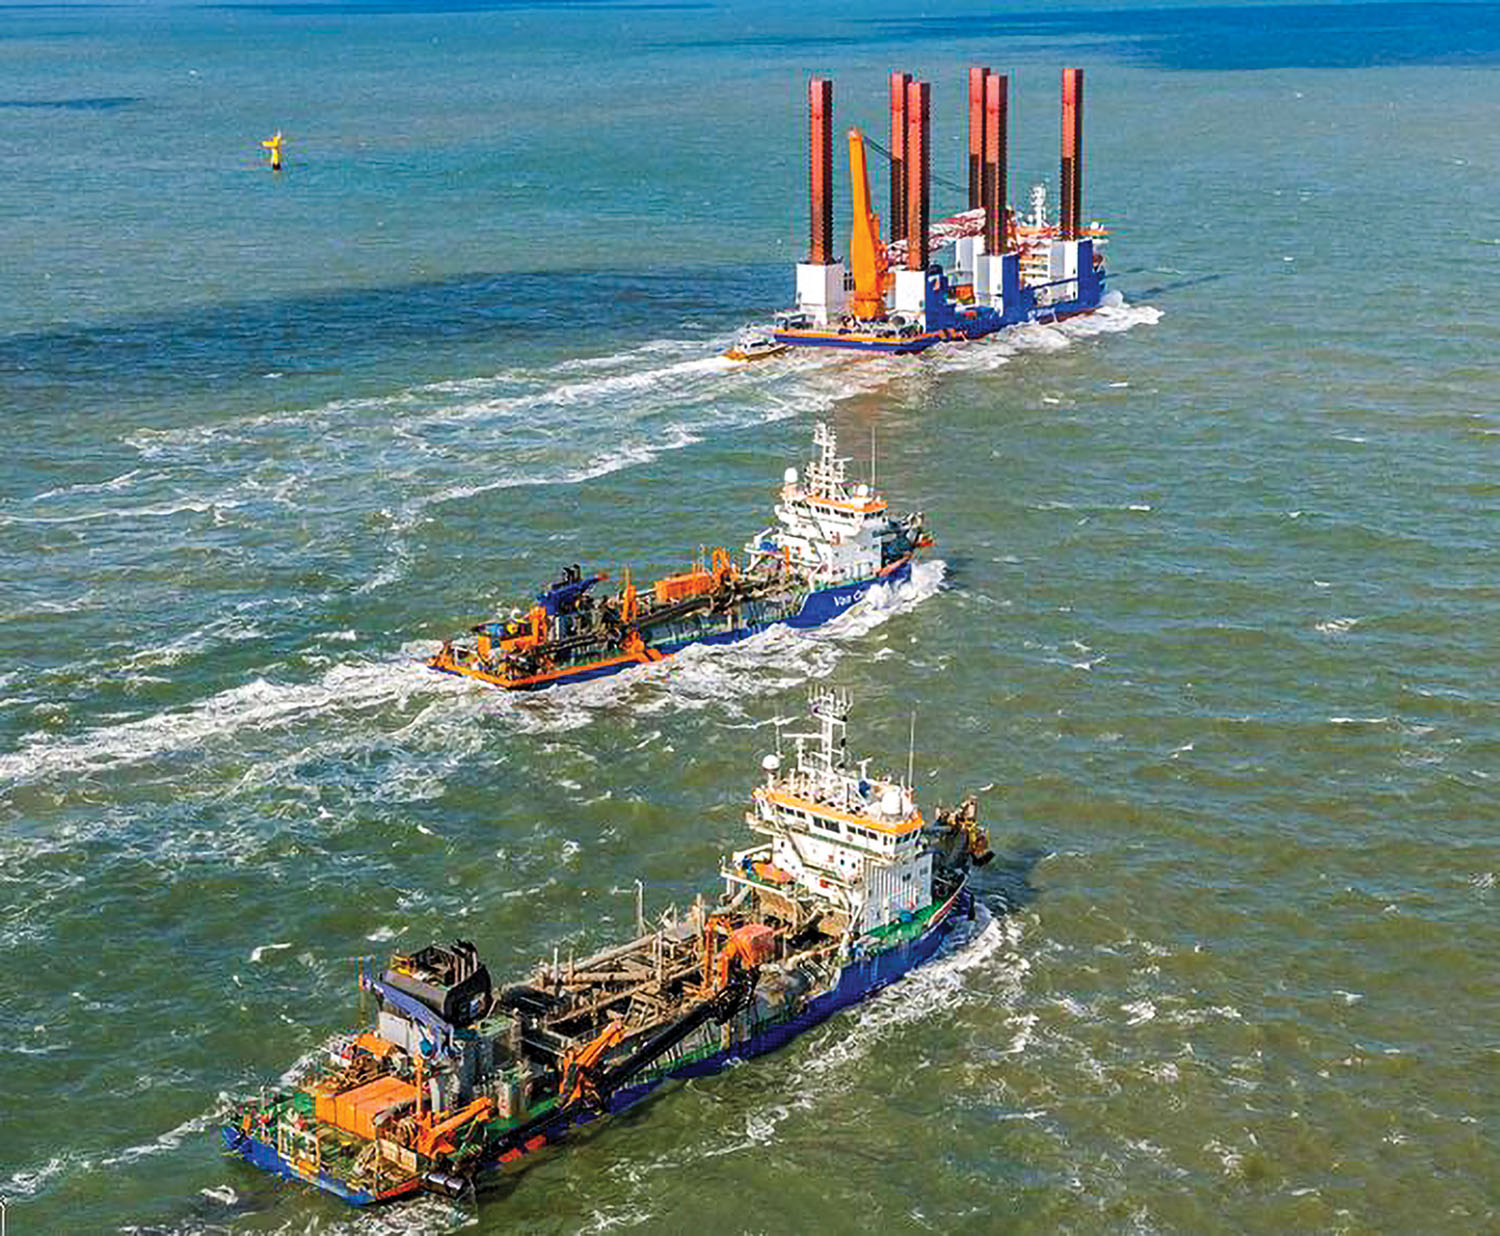 As part of a three-year agreement, ABB Turbocharging will provide maintenance support and optimization across Van Oord's dredge fleet. (Photo courtesy of Van Oord)